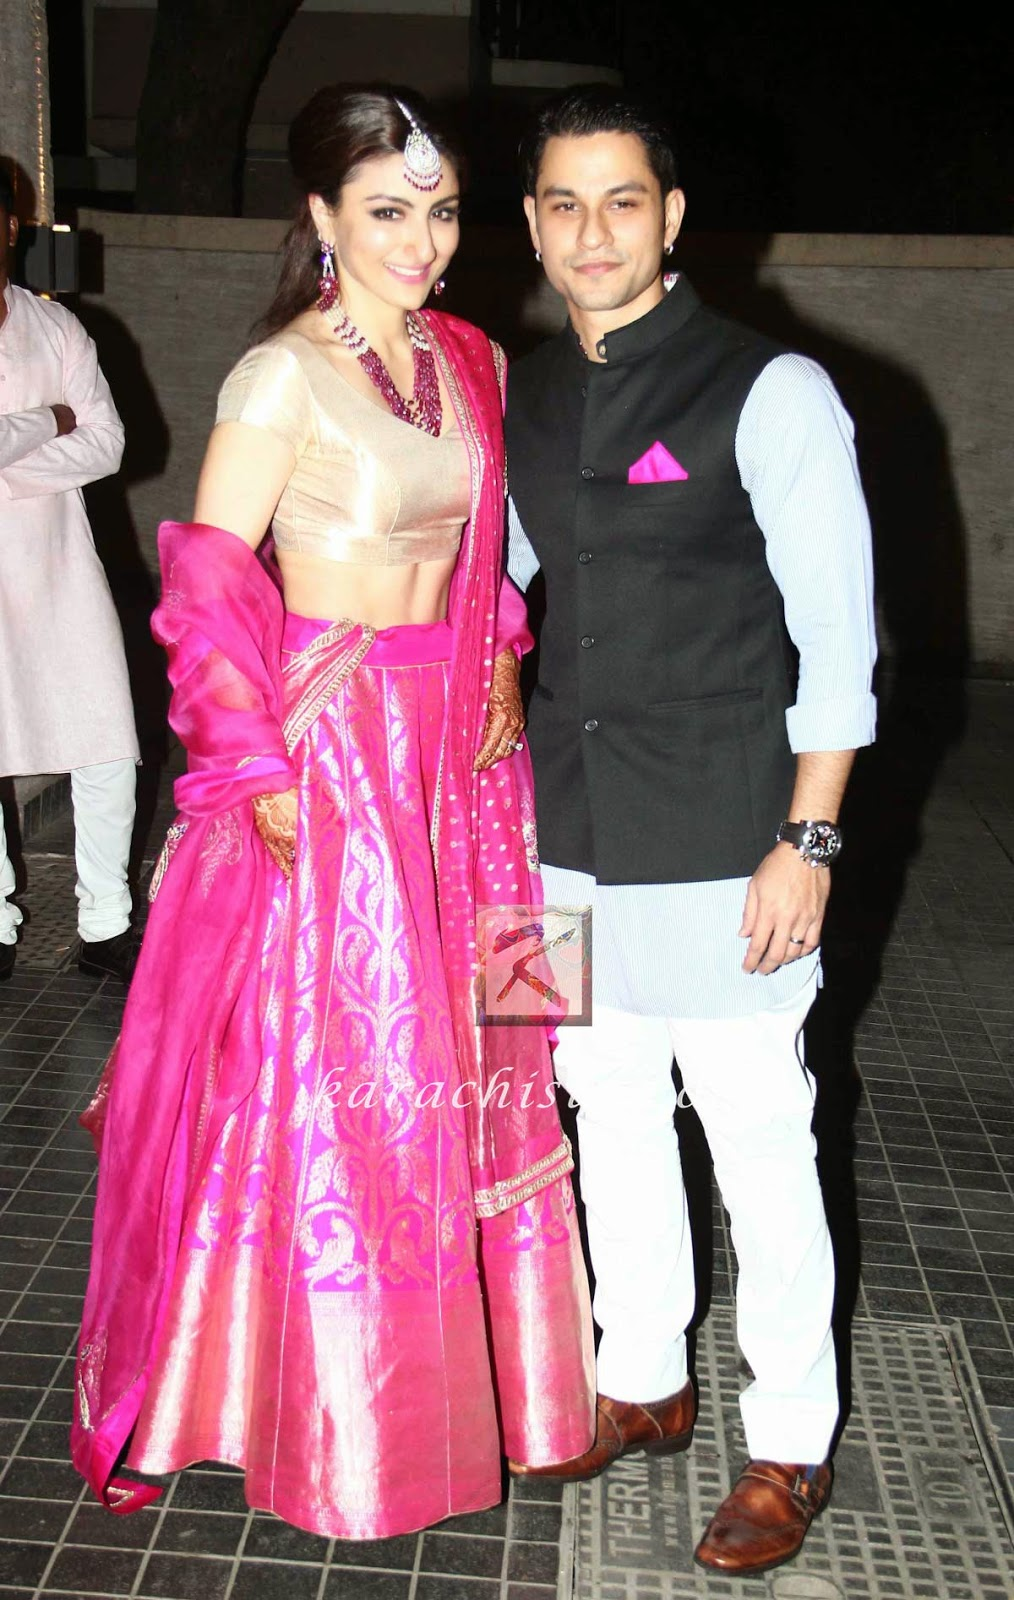 Soha Ali Khan (in Sanjay Garg pink lengha) and Kunal Khemu at their wedding reception in Bandra